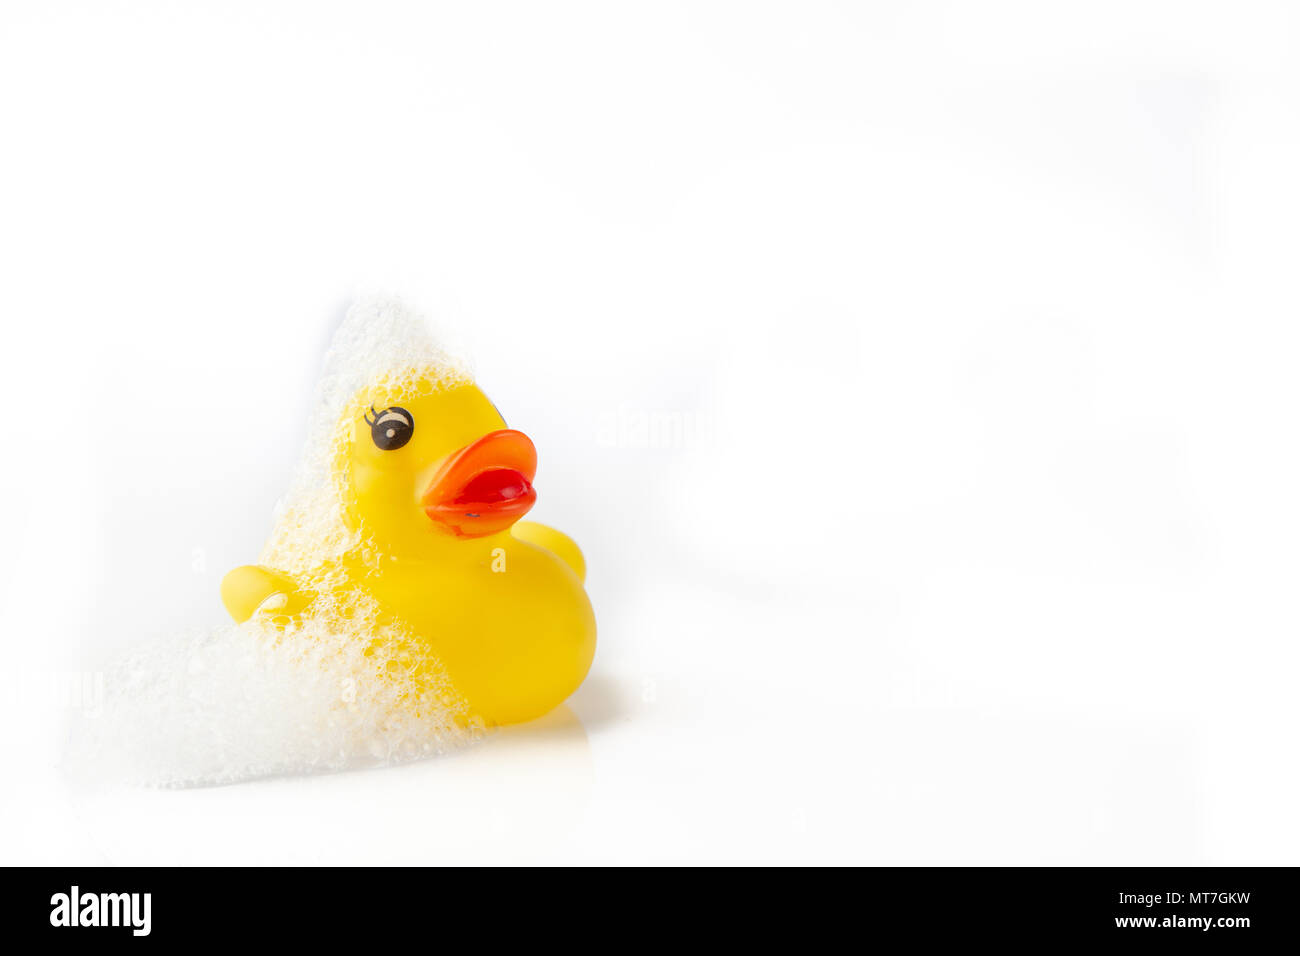 One Yellow rubber duck with soap suds on its head on white background - Stock Image